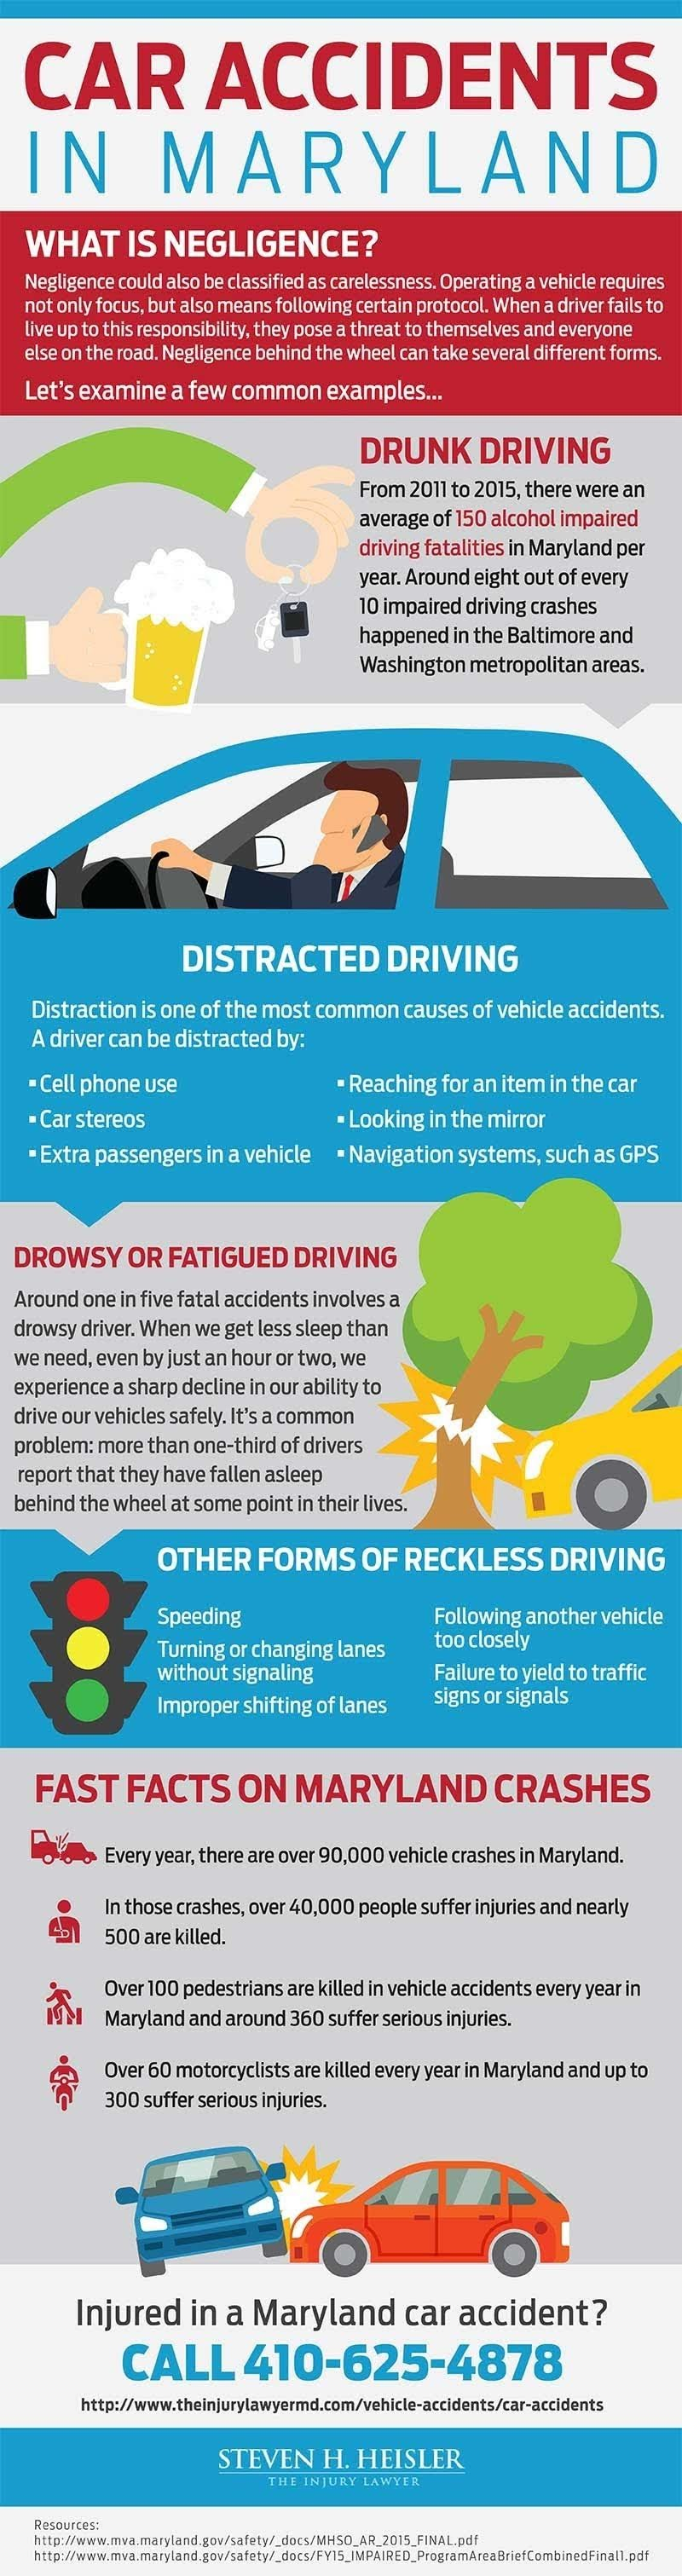 car-accidents-in-maryland-infographic